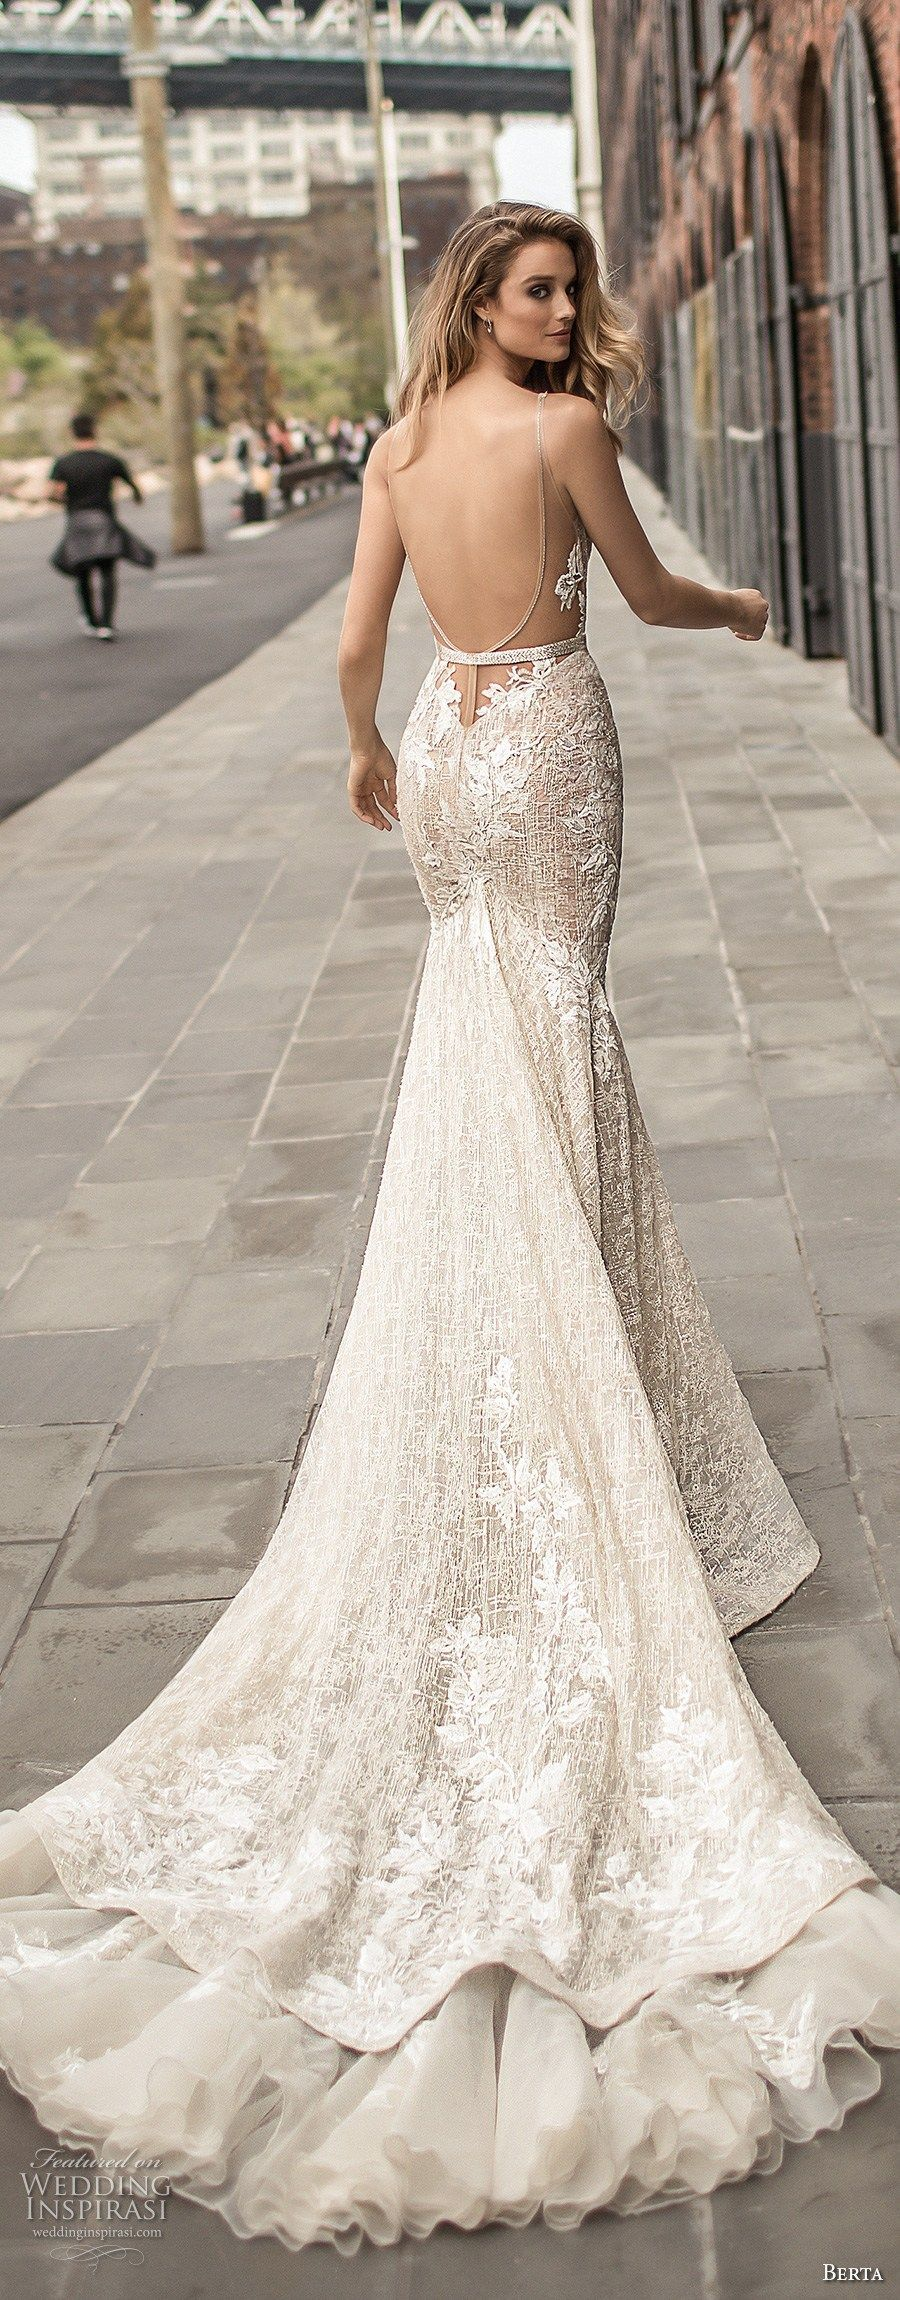 Berta bridal spring wedding dresses u part top wedding tips